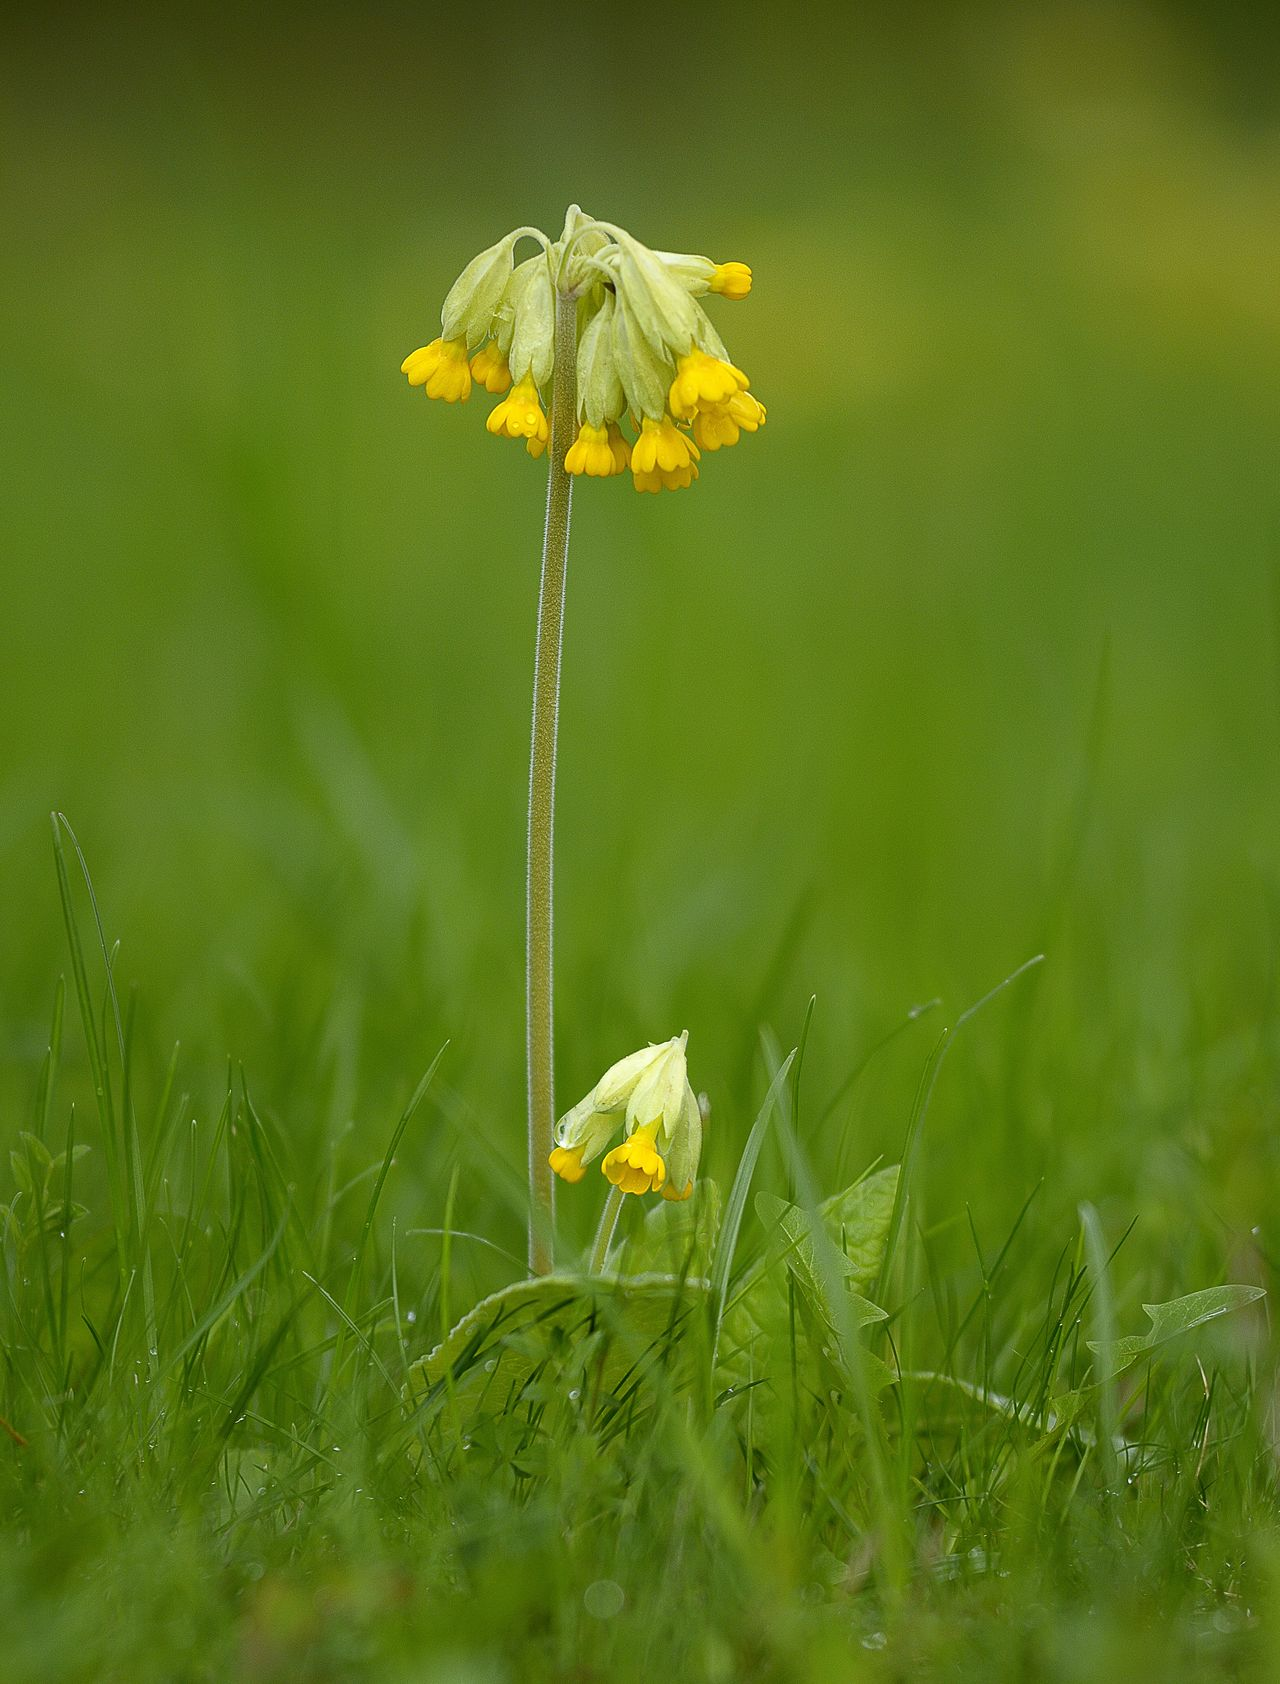 Beauty In Nature Close-up Field Flower Grass Macro Photography Nature Outdoors Primrose Springtime Yellow